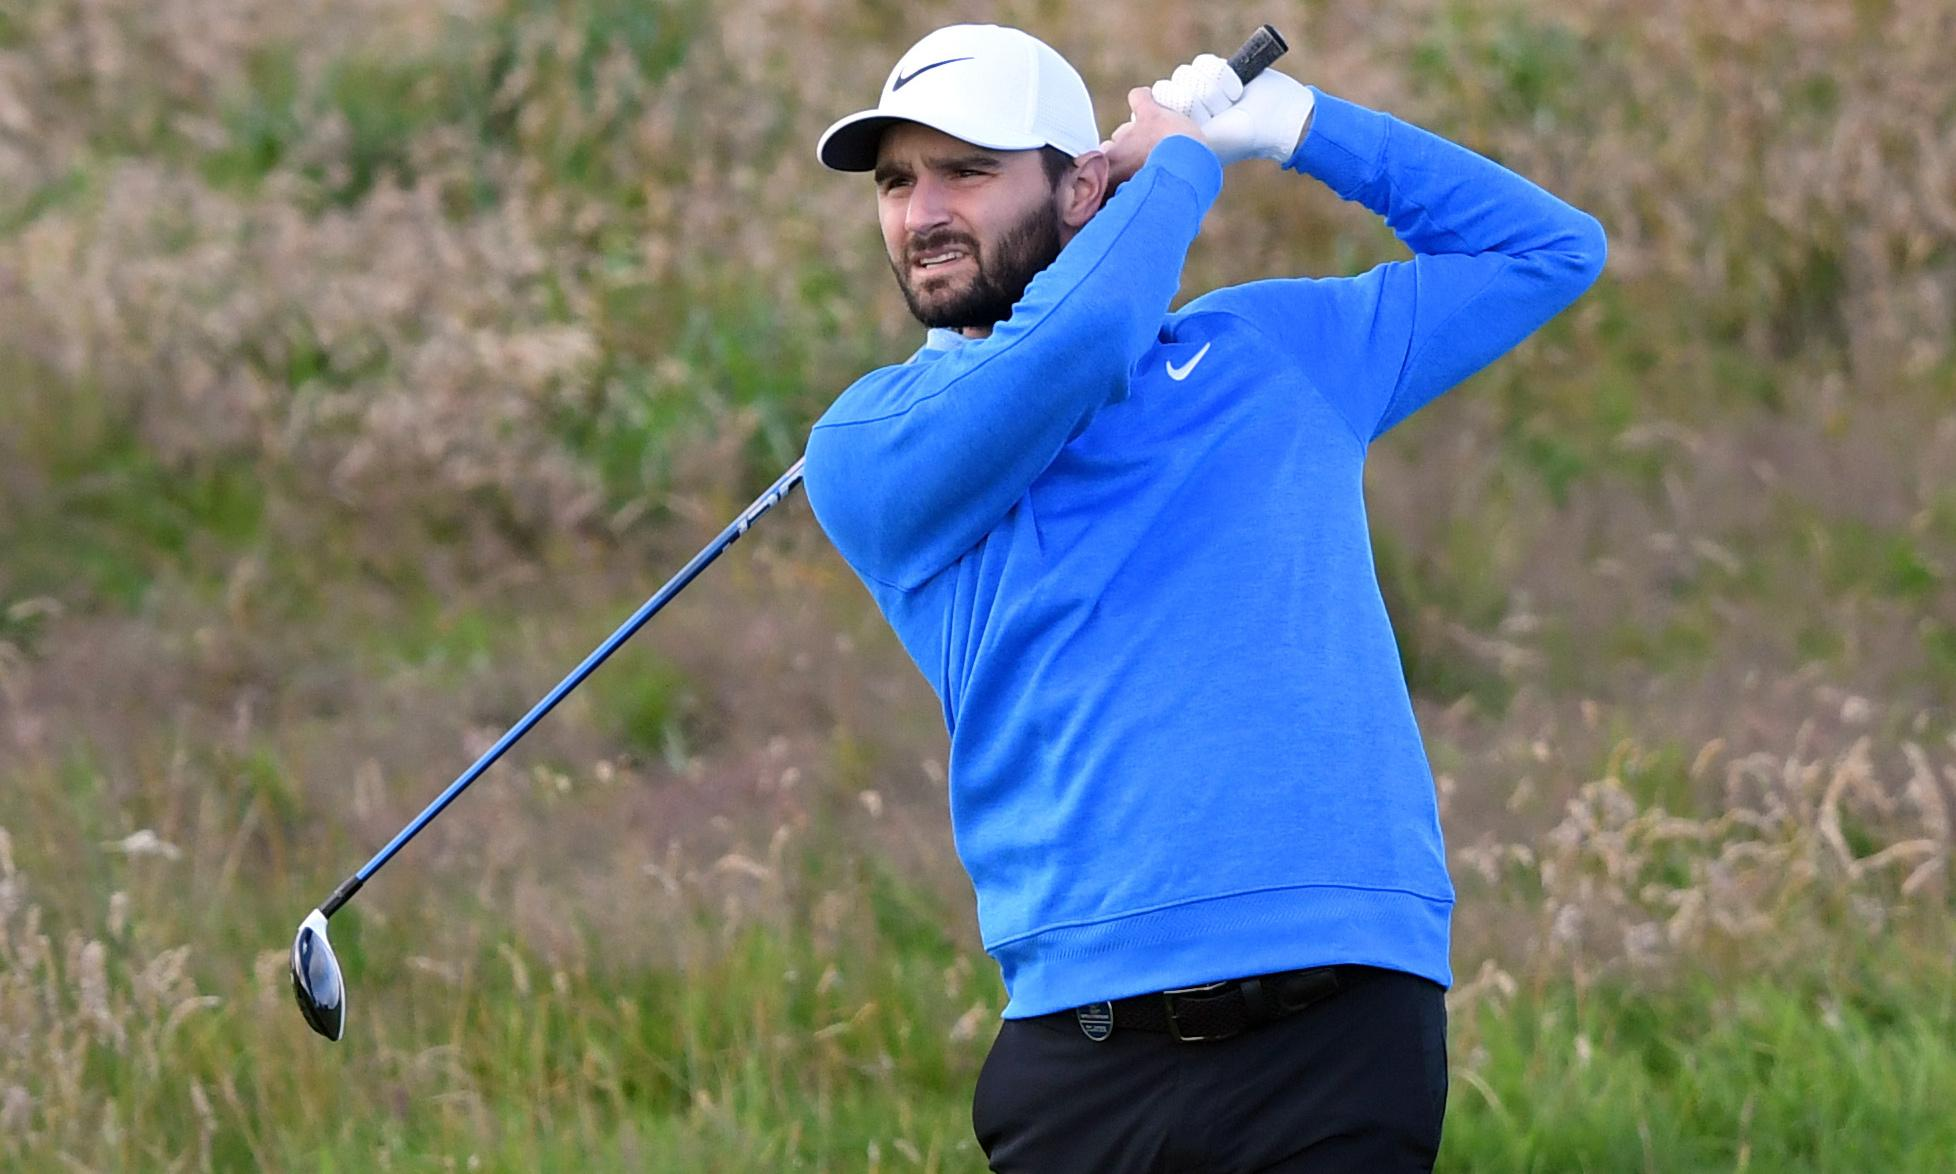 Fore fail: Stanley strikes back after stray ball hits mother of partner's caddie